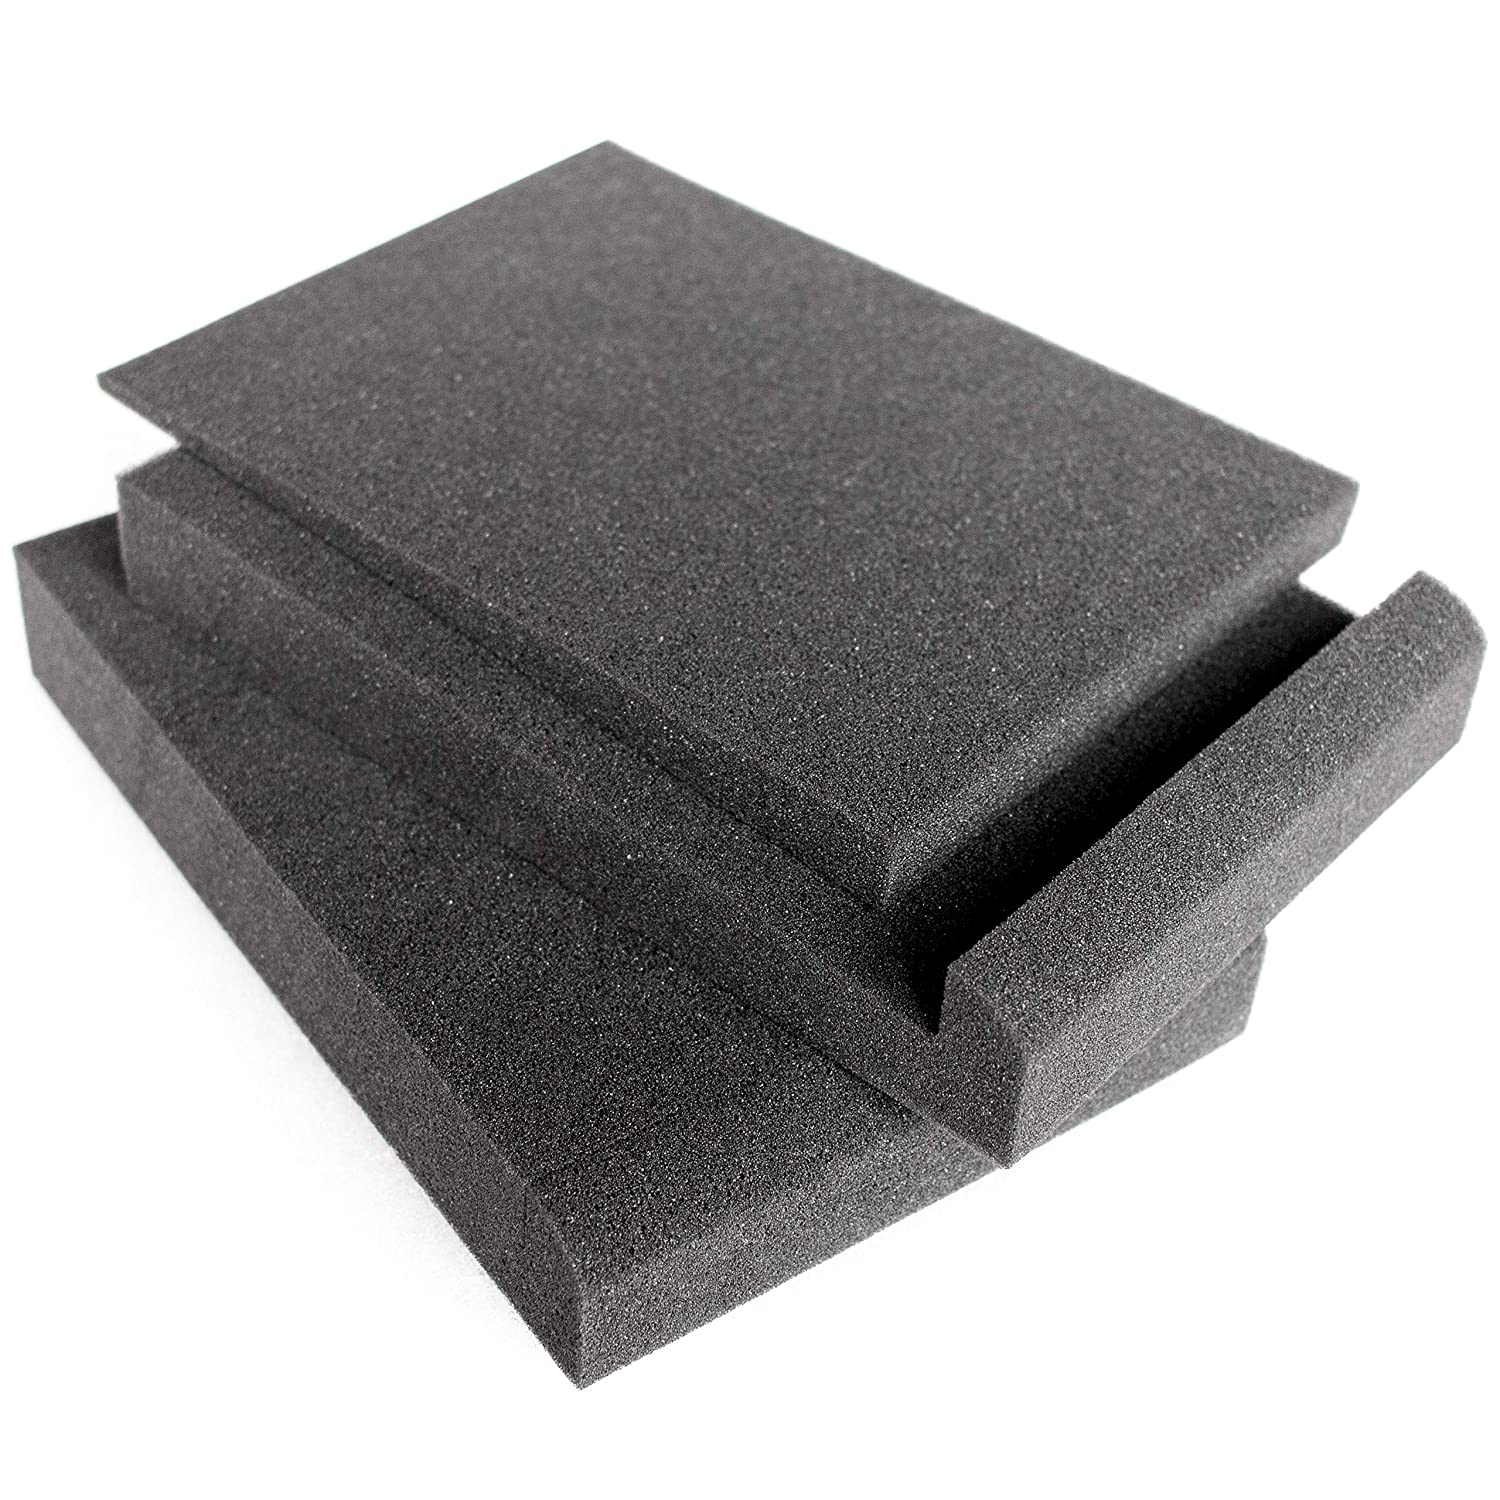 Acoustic Sponge Foam Placing on Desk or Stands as Vibration Isolator Blanc Heart Speaker Isolation Pads for 7 or 8 Inch Studio Monitor Option for 6 Available